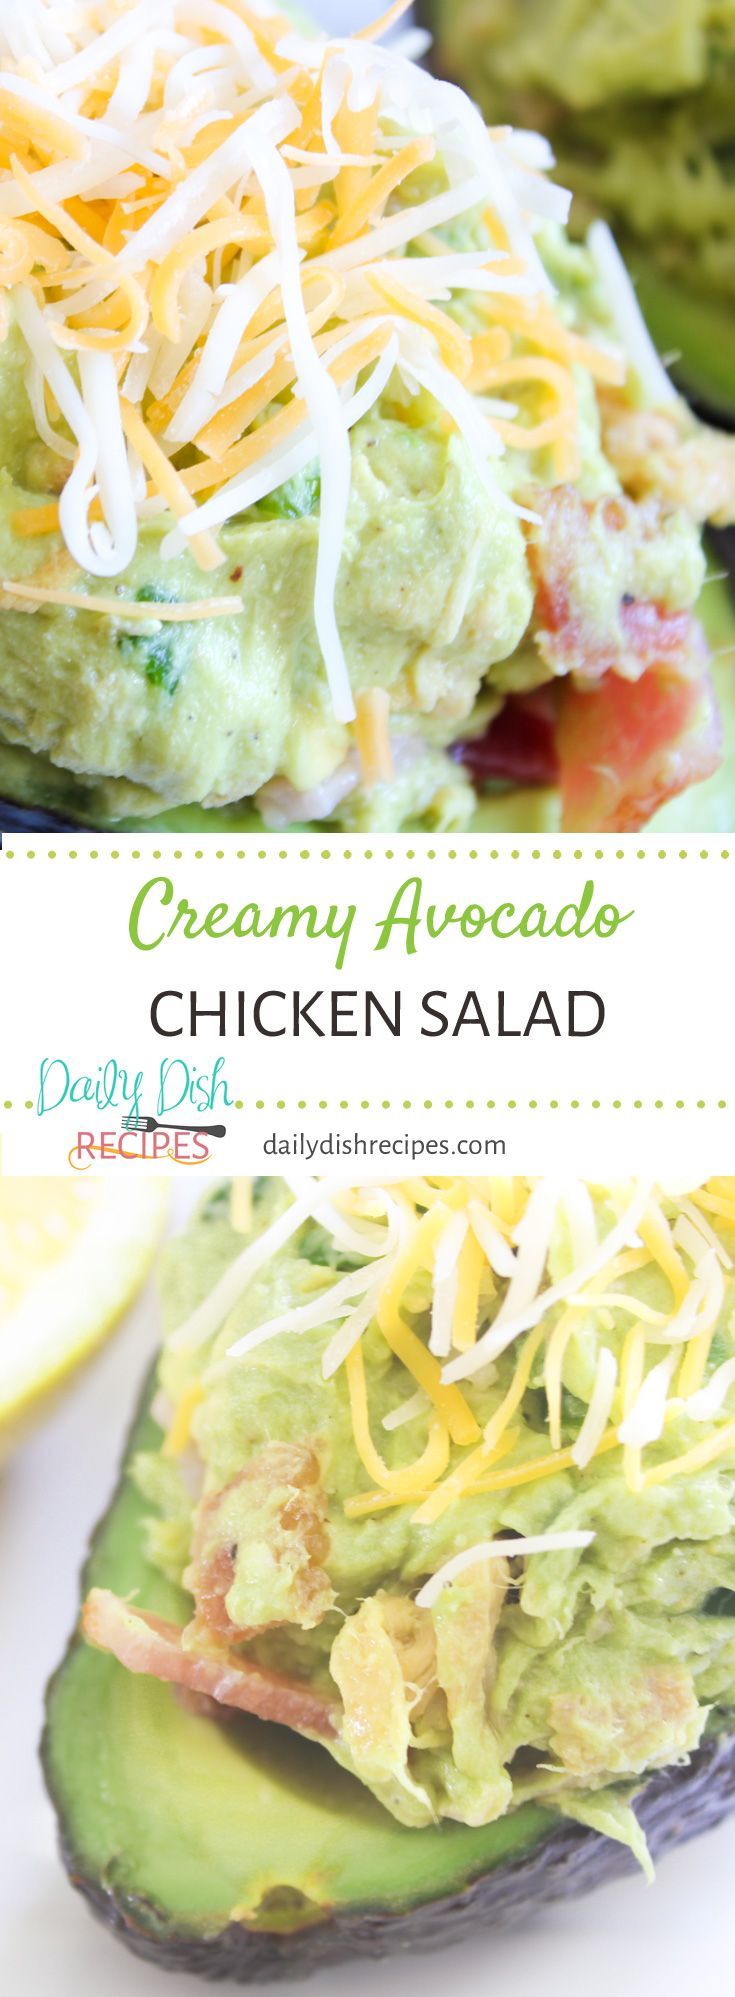 There is absolutely nothing better than this Creamy Avocado Chicken Salad. It's so delish and you can serve it right in the avocado skin. via @dailydishrecipes